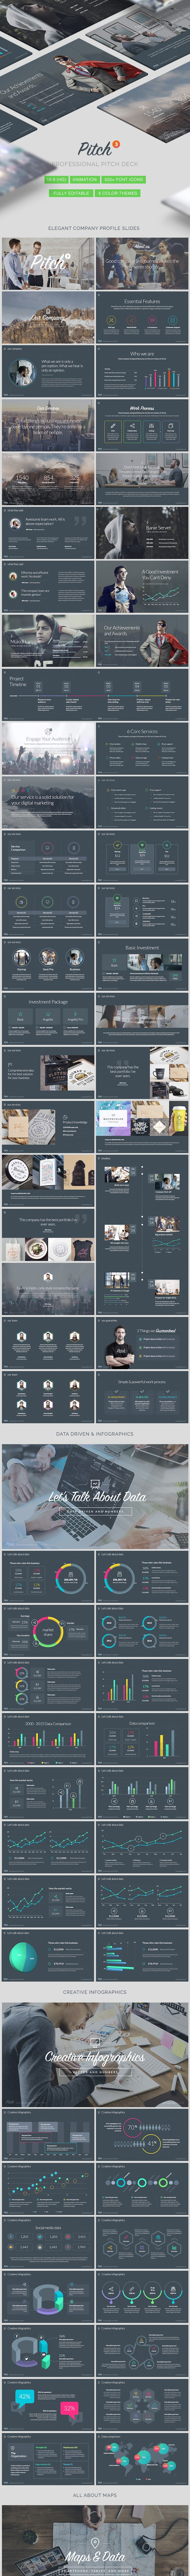 Pitch Vol.3 - Professional Powerpoint Template - PowerPoint Templates Presentation Templates